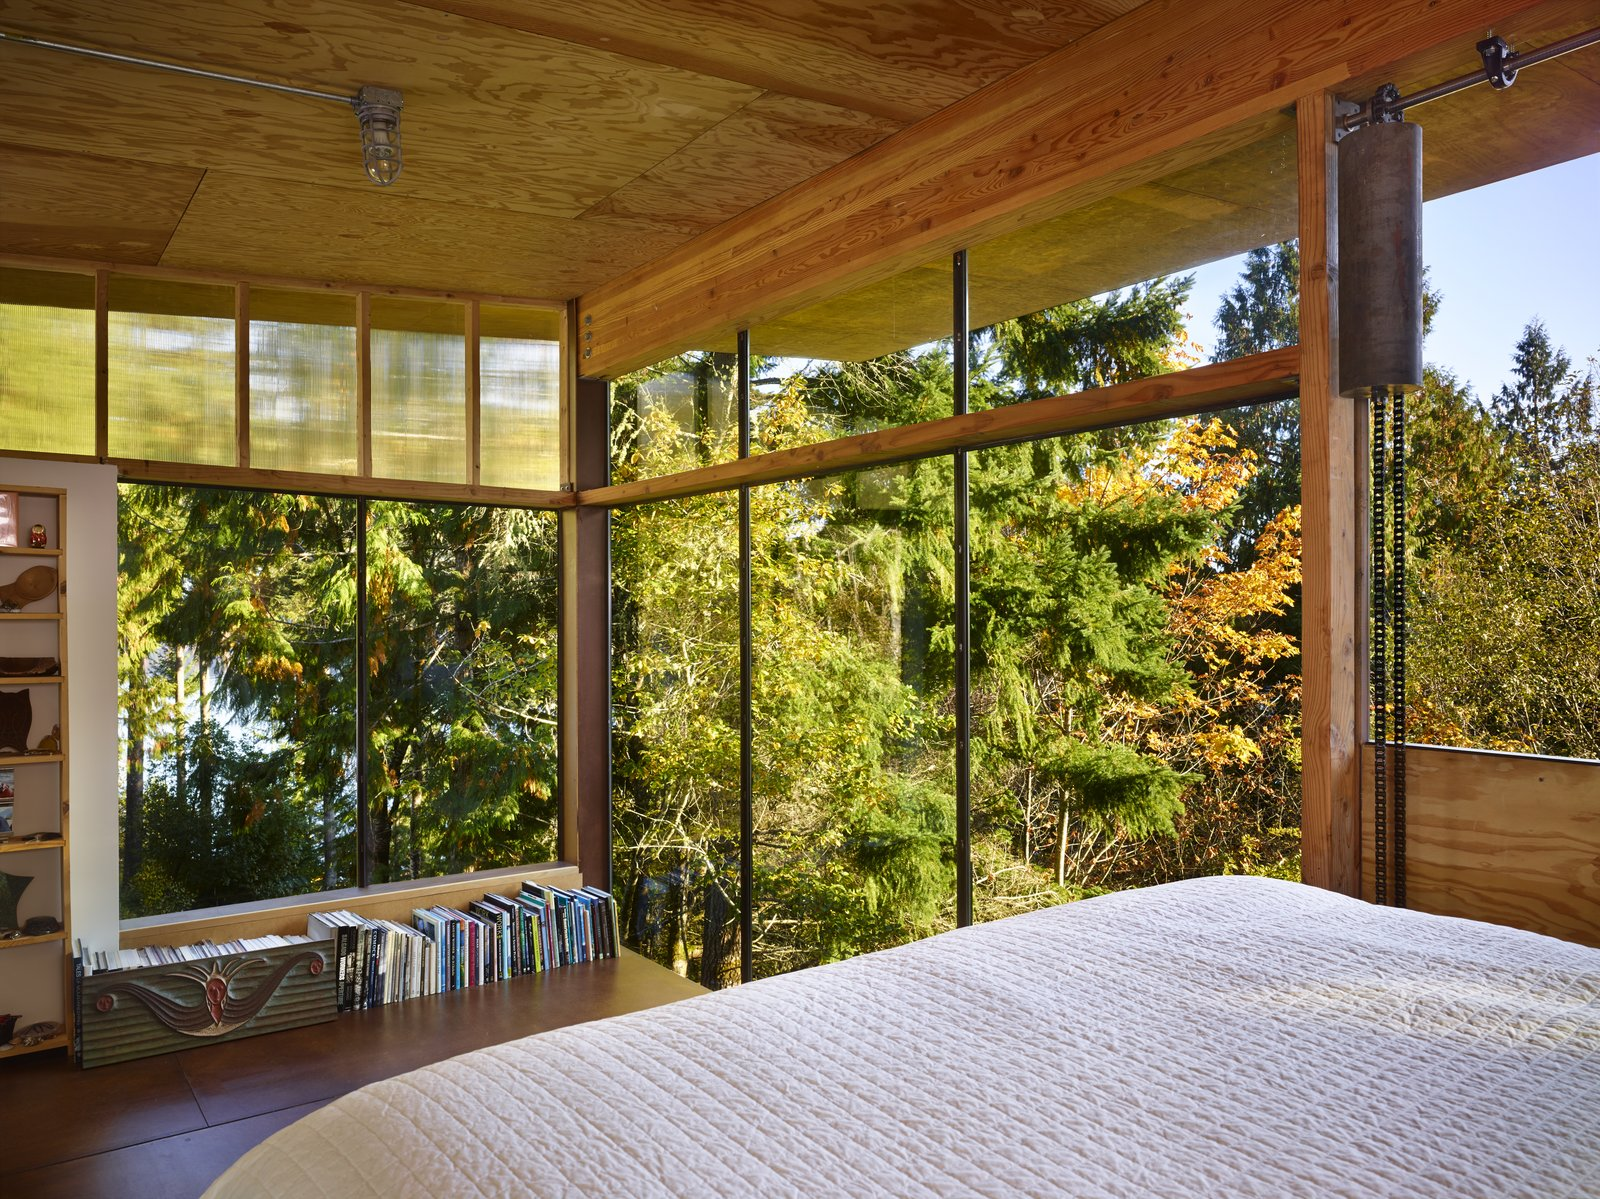 Bedroom, Bed, Ceiling, and Shelves In the sleeping loft, floor-to-ceiling windows overlook a canopy of trees.  Best Bedroom Ceiling Shelves Photos from Reclaimed Materials Make Up This Artist Studio in Washington